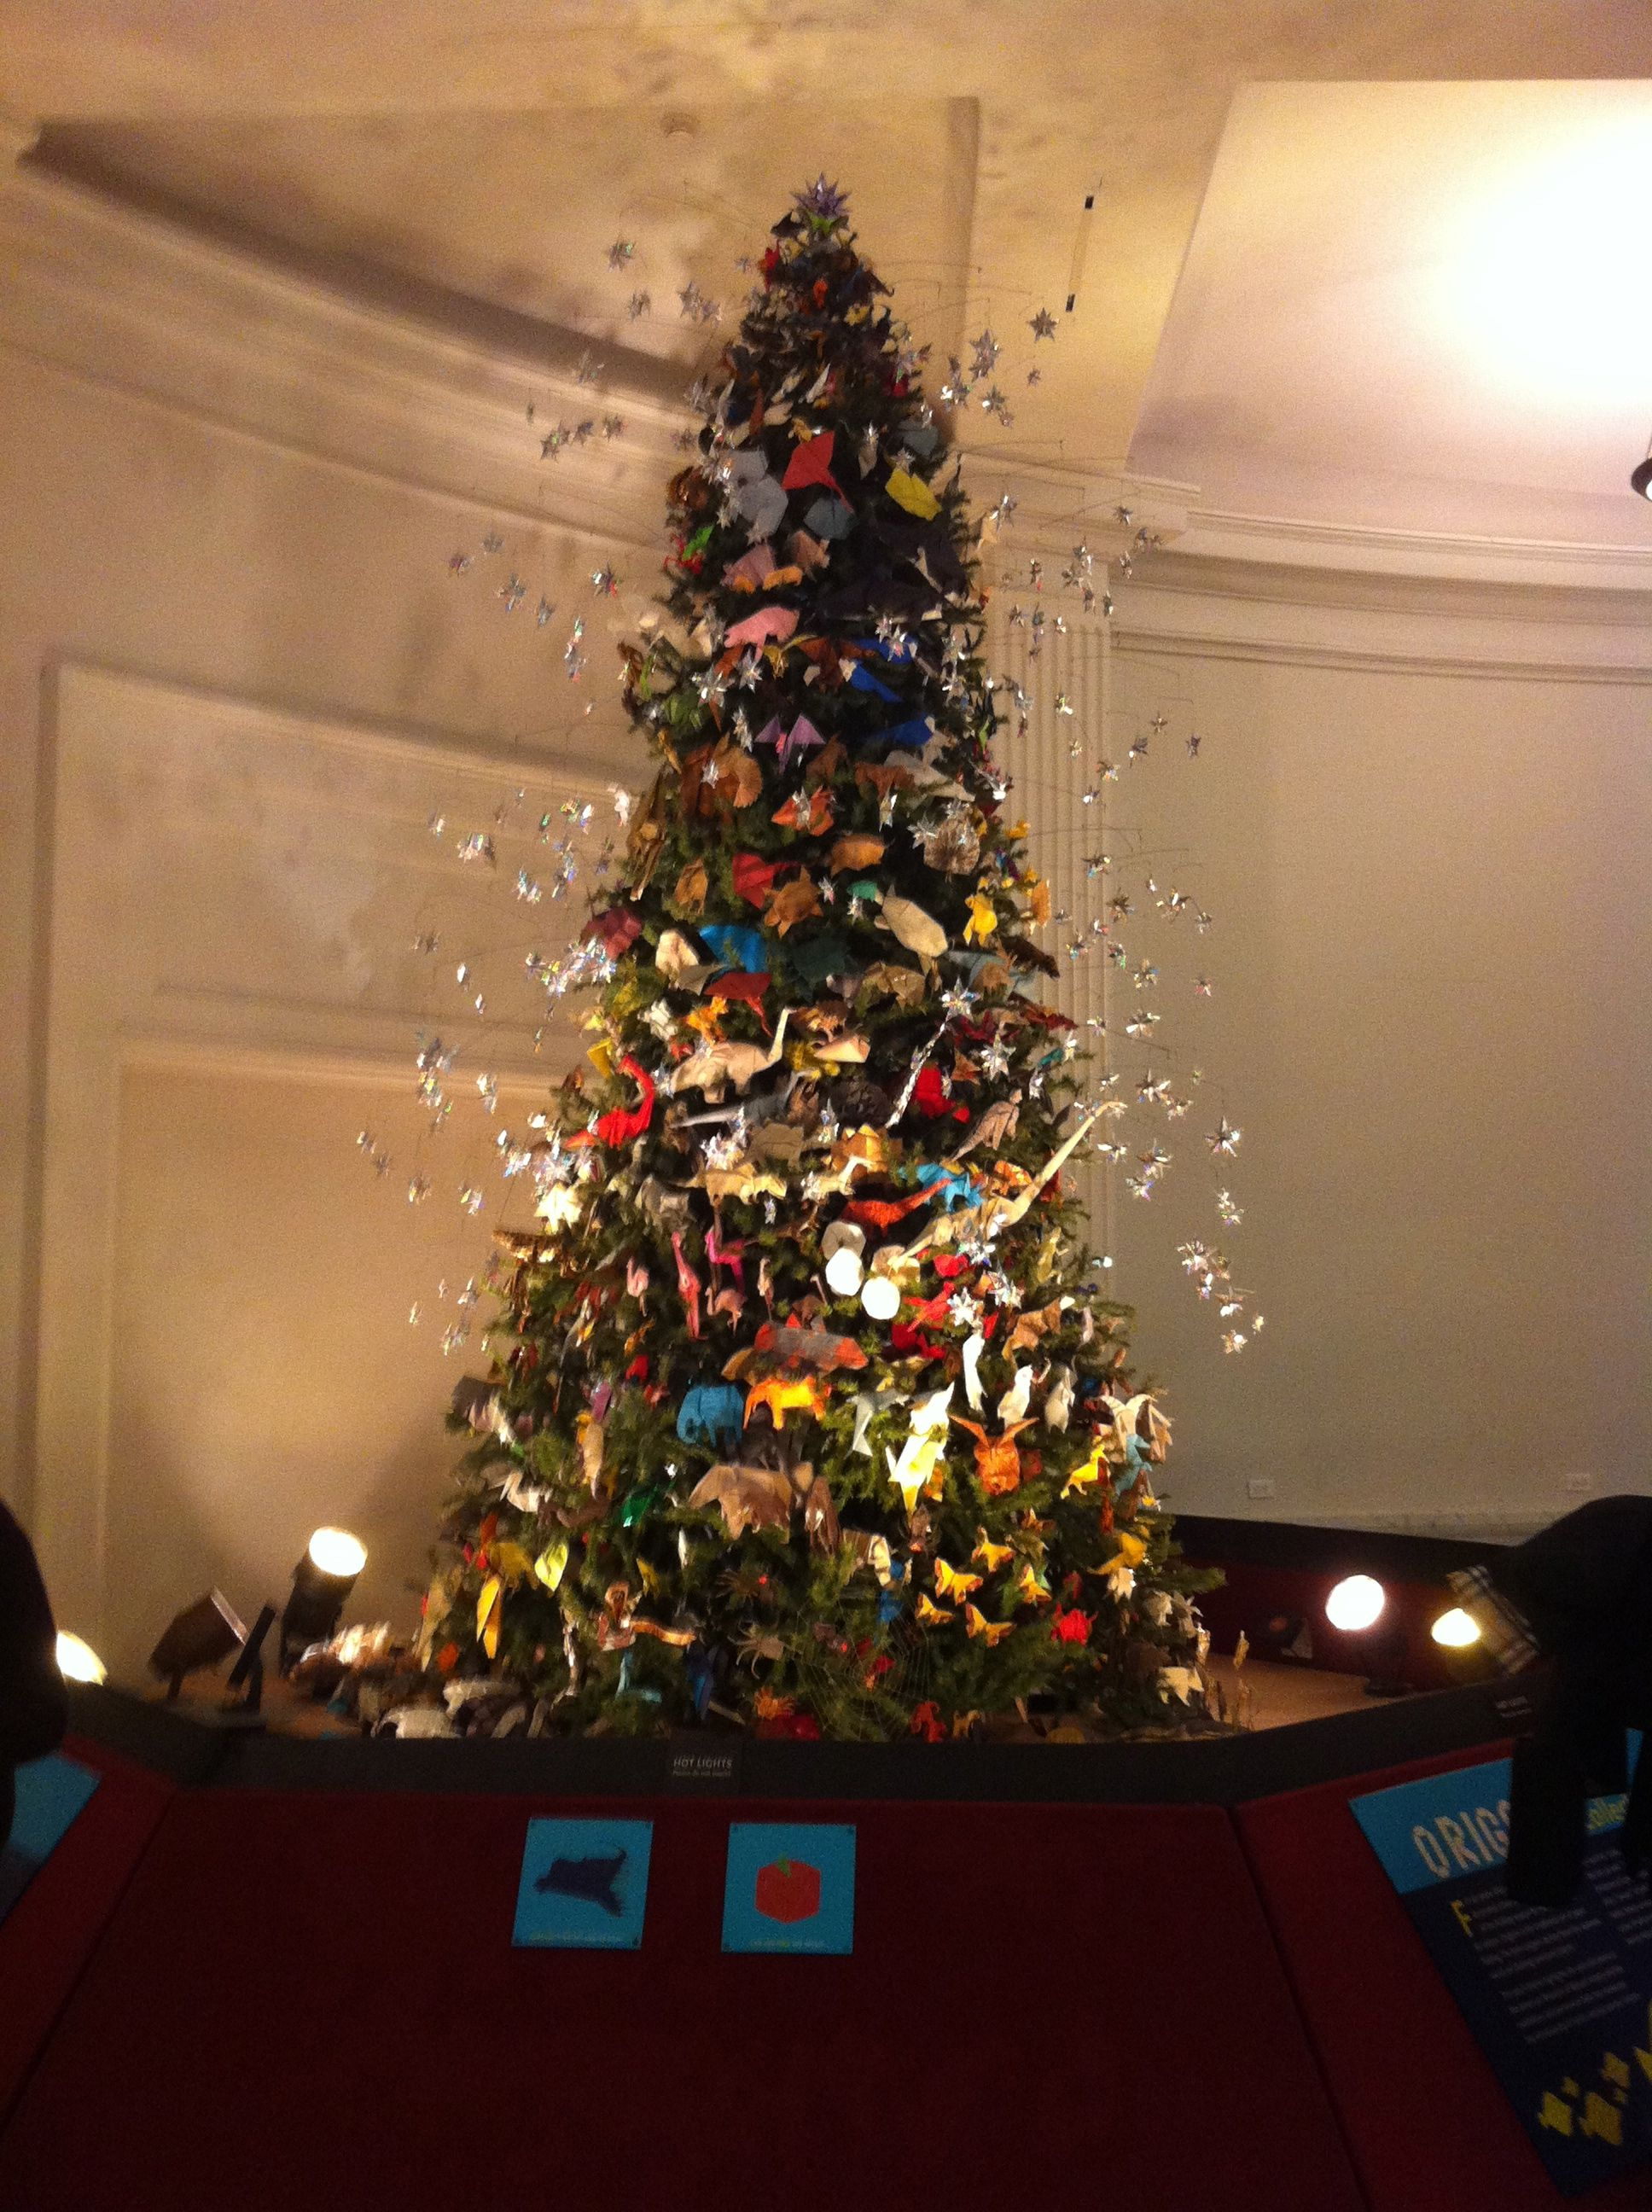 Origami Tree, American Museum of Natural History, NY (With